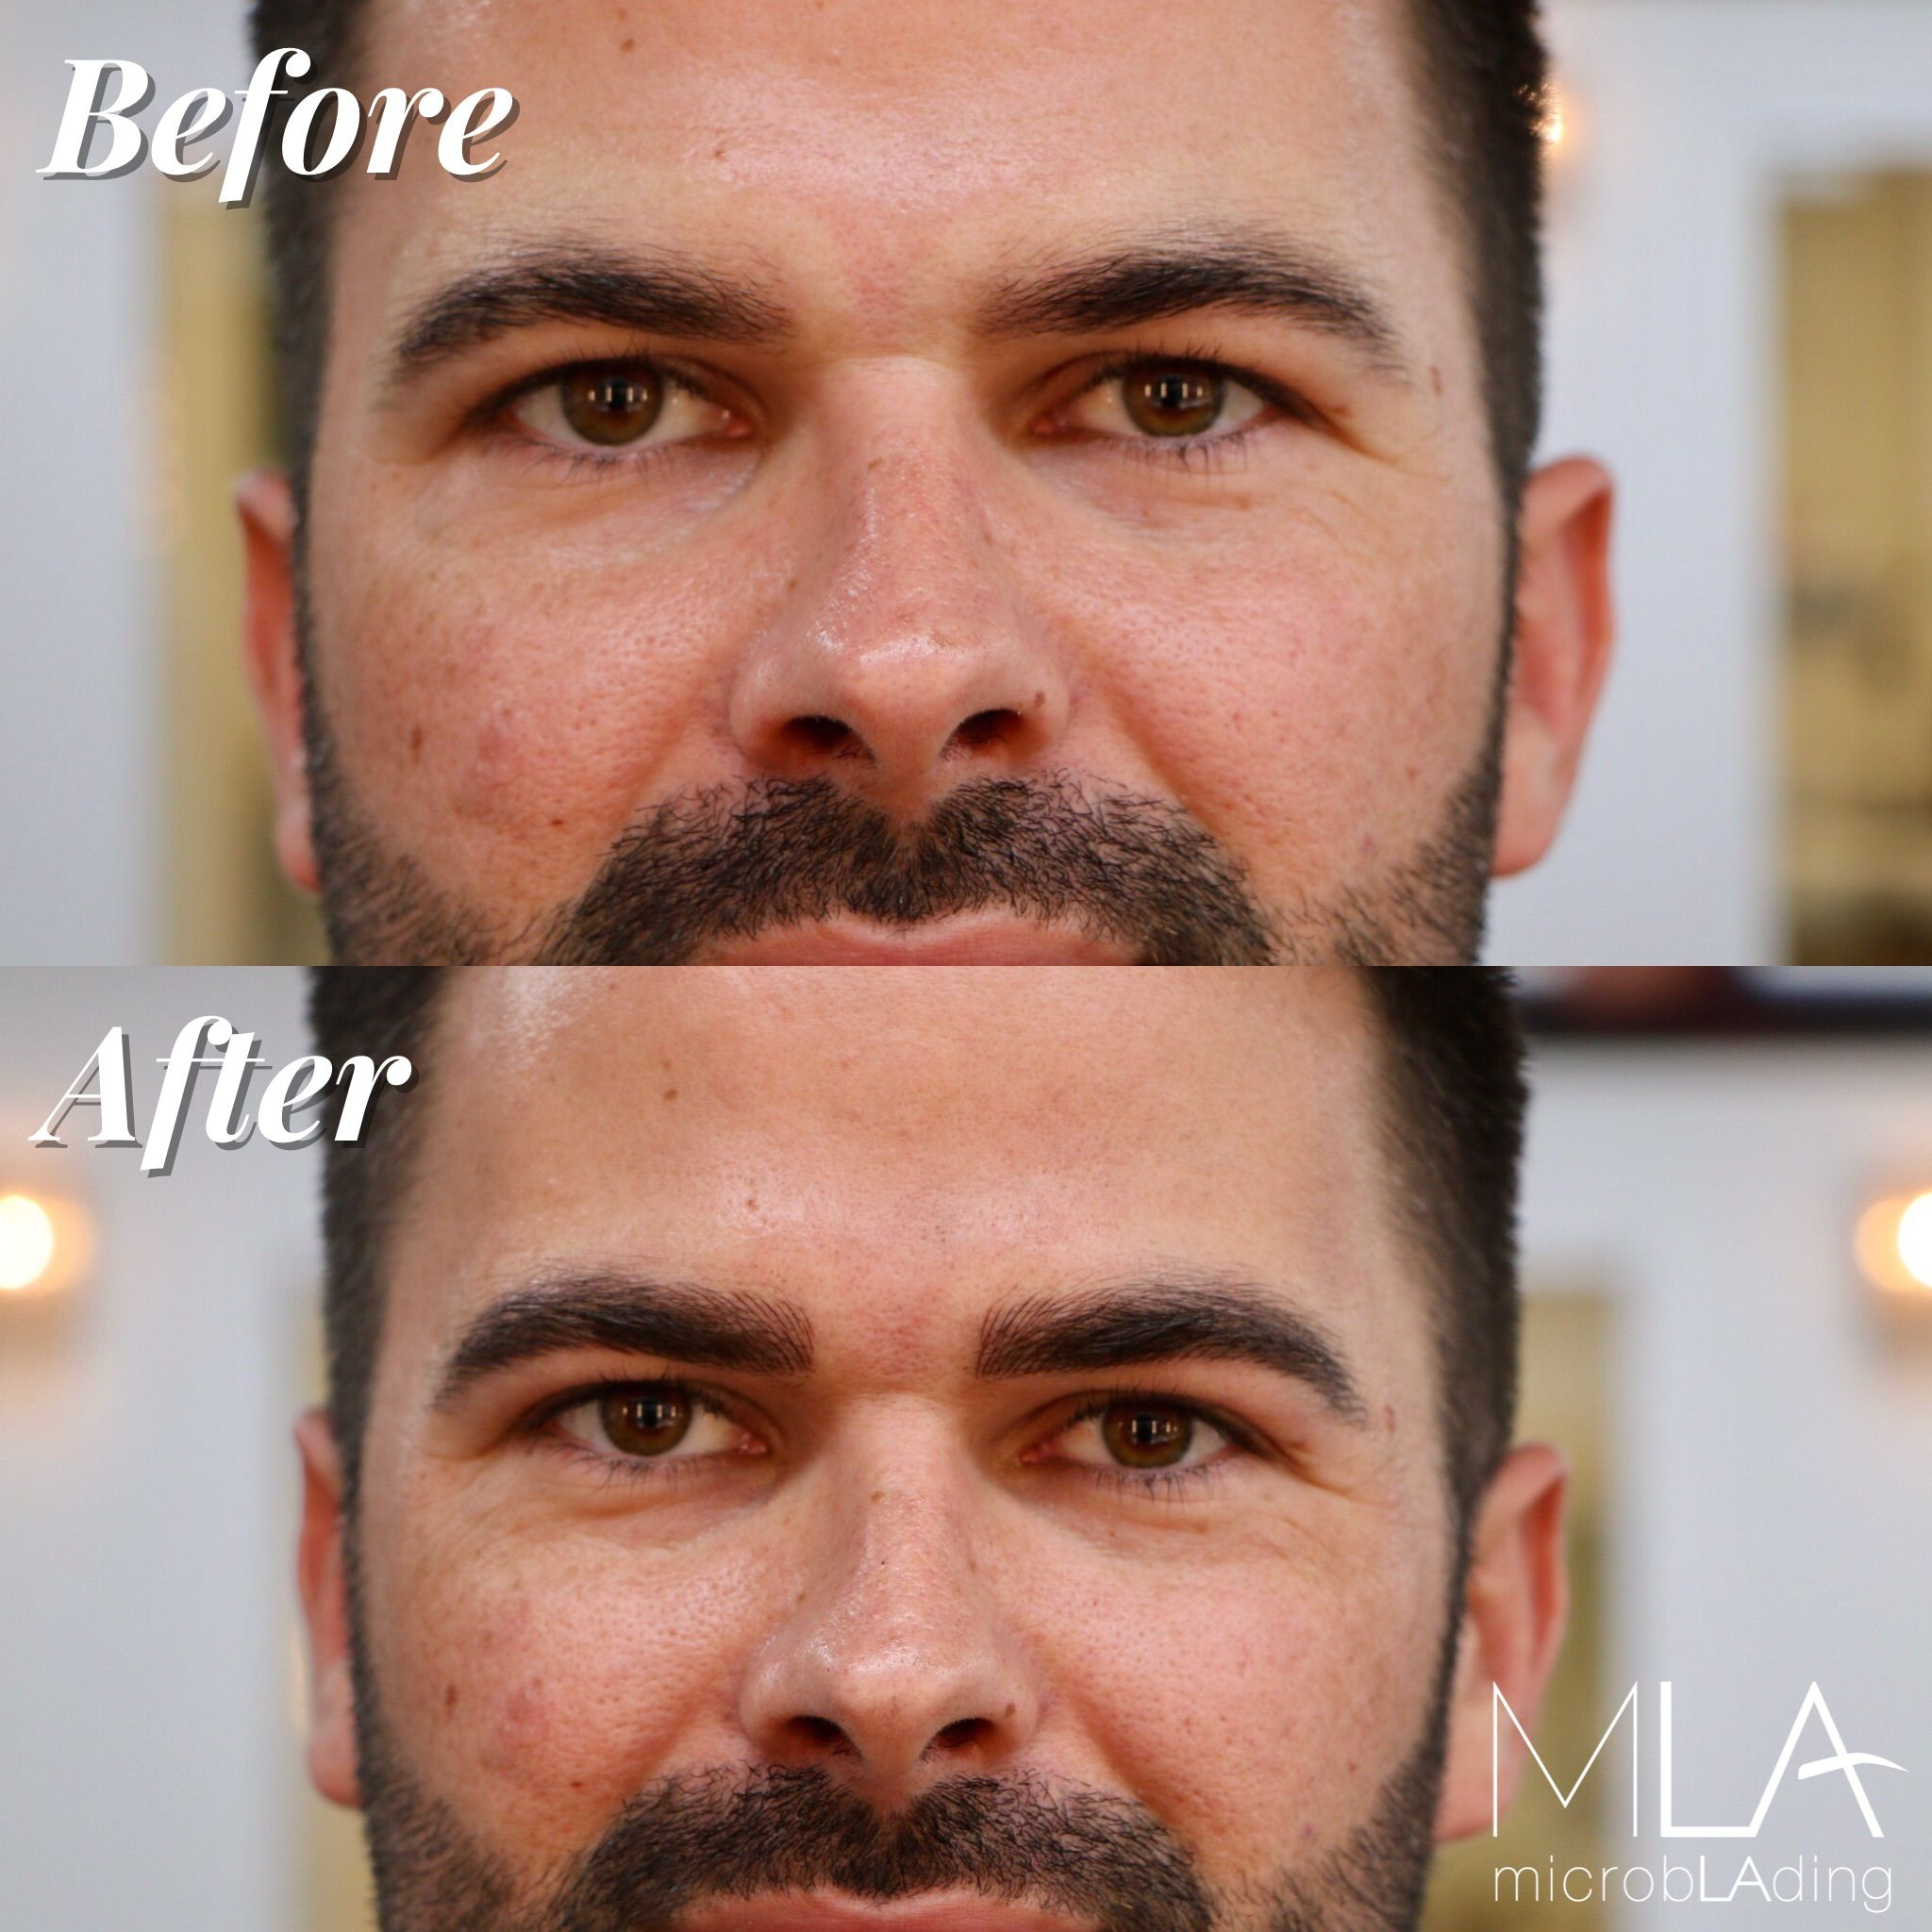 Microblading For Men Microblading Hair Strokes Can Look